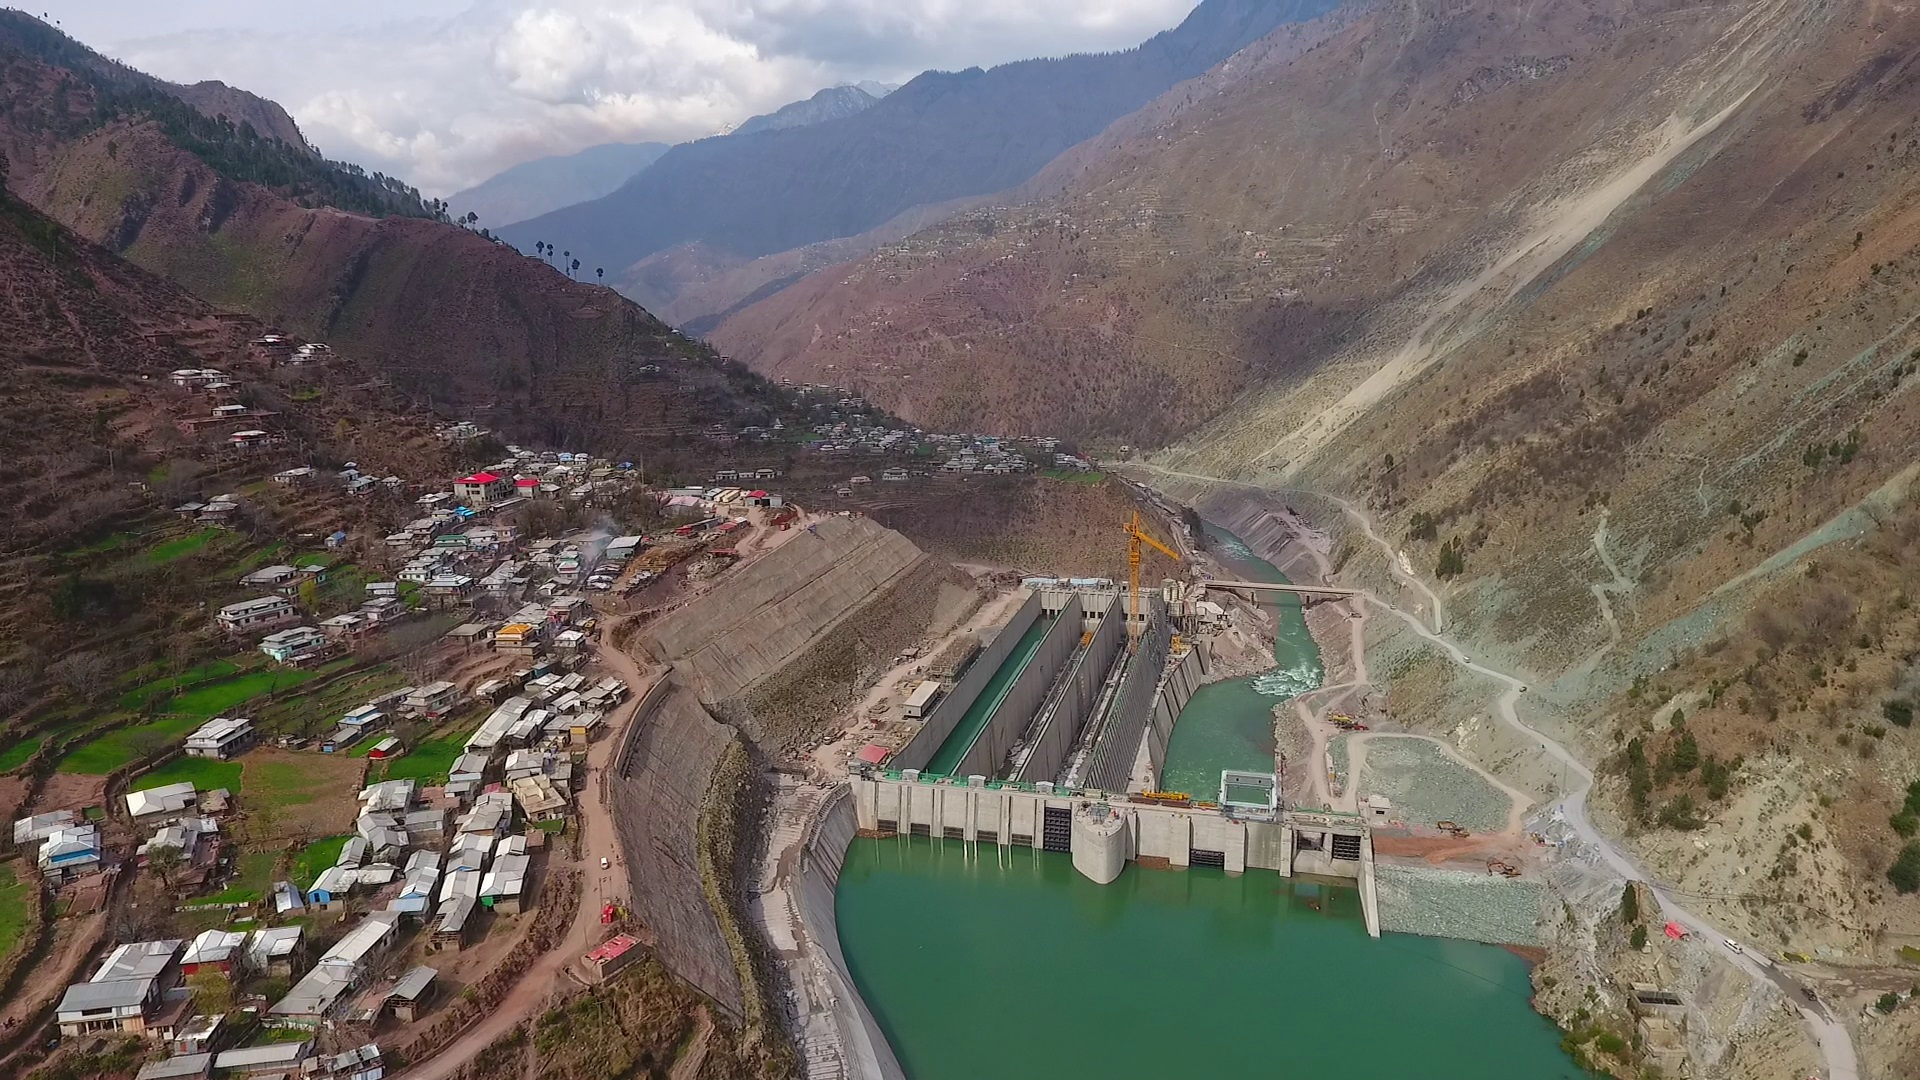 Neelam Jehlam Hydropower Project